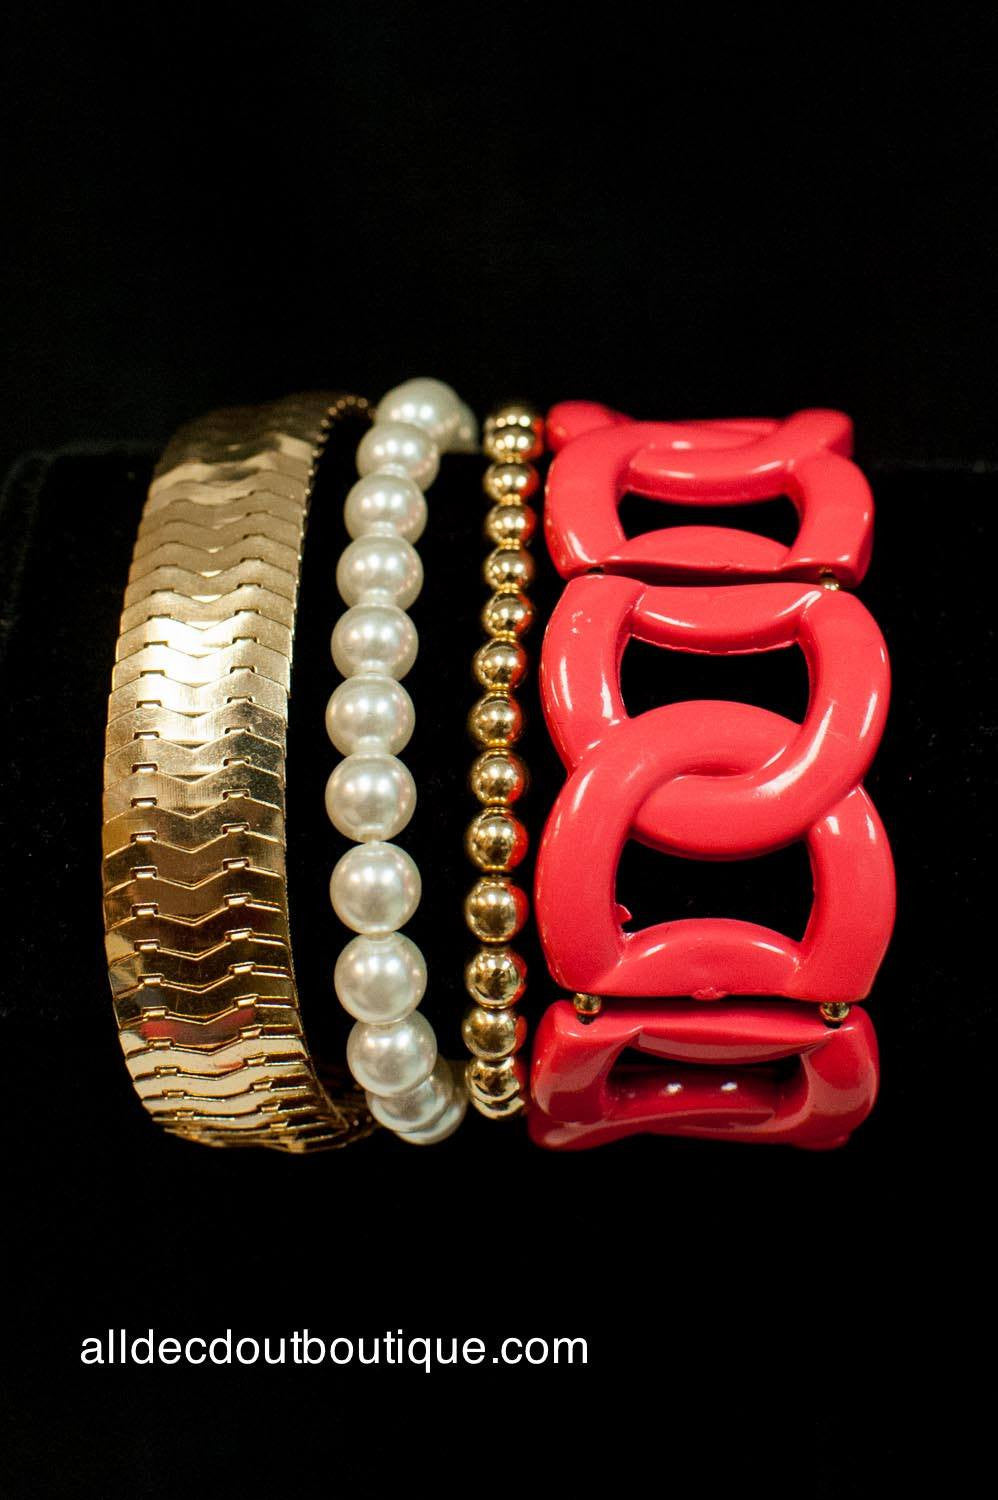 ADO | Coral and Gold Chain Link Stretch Bracelet - All Decd Out